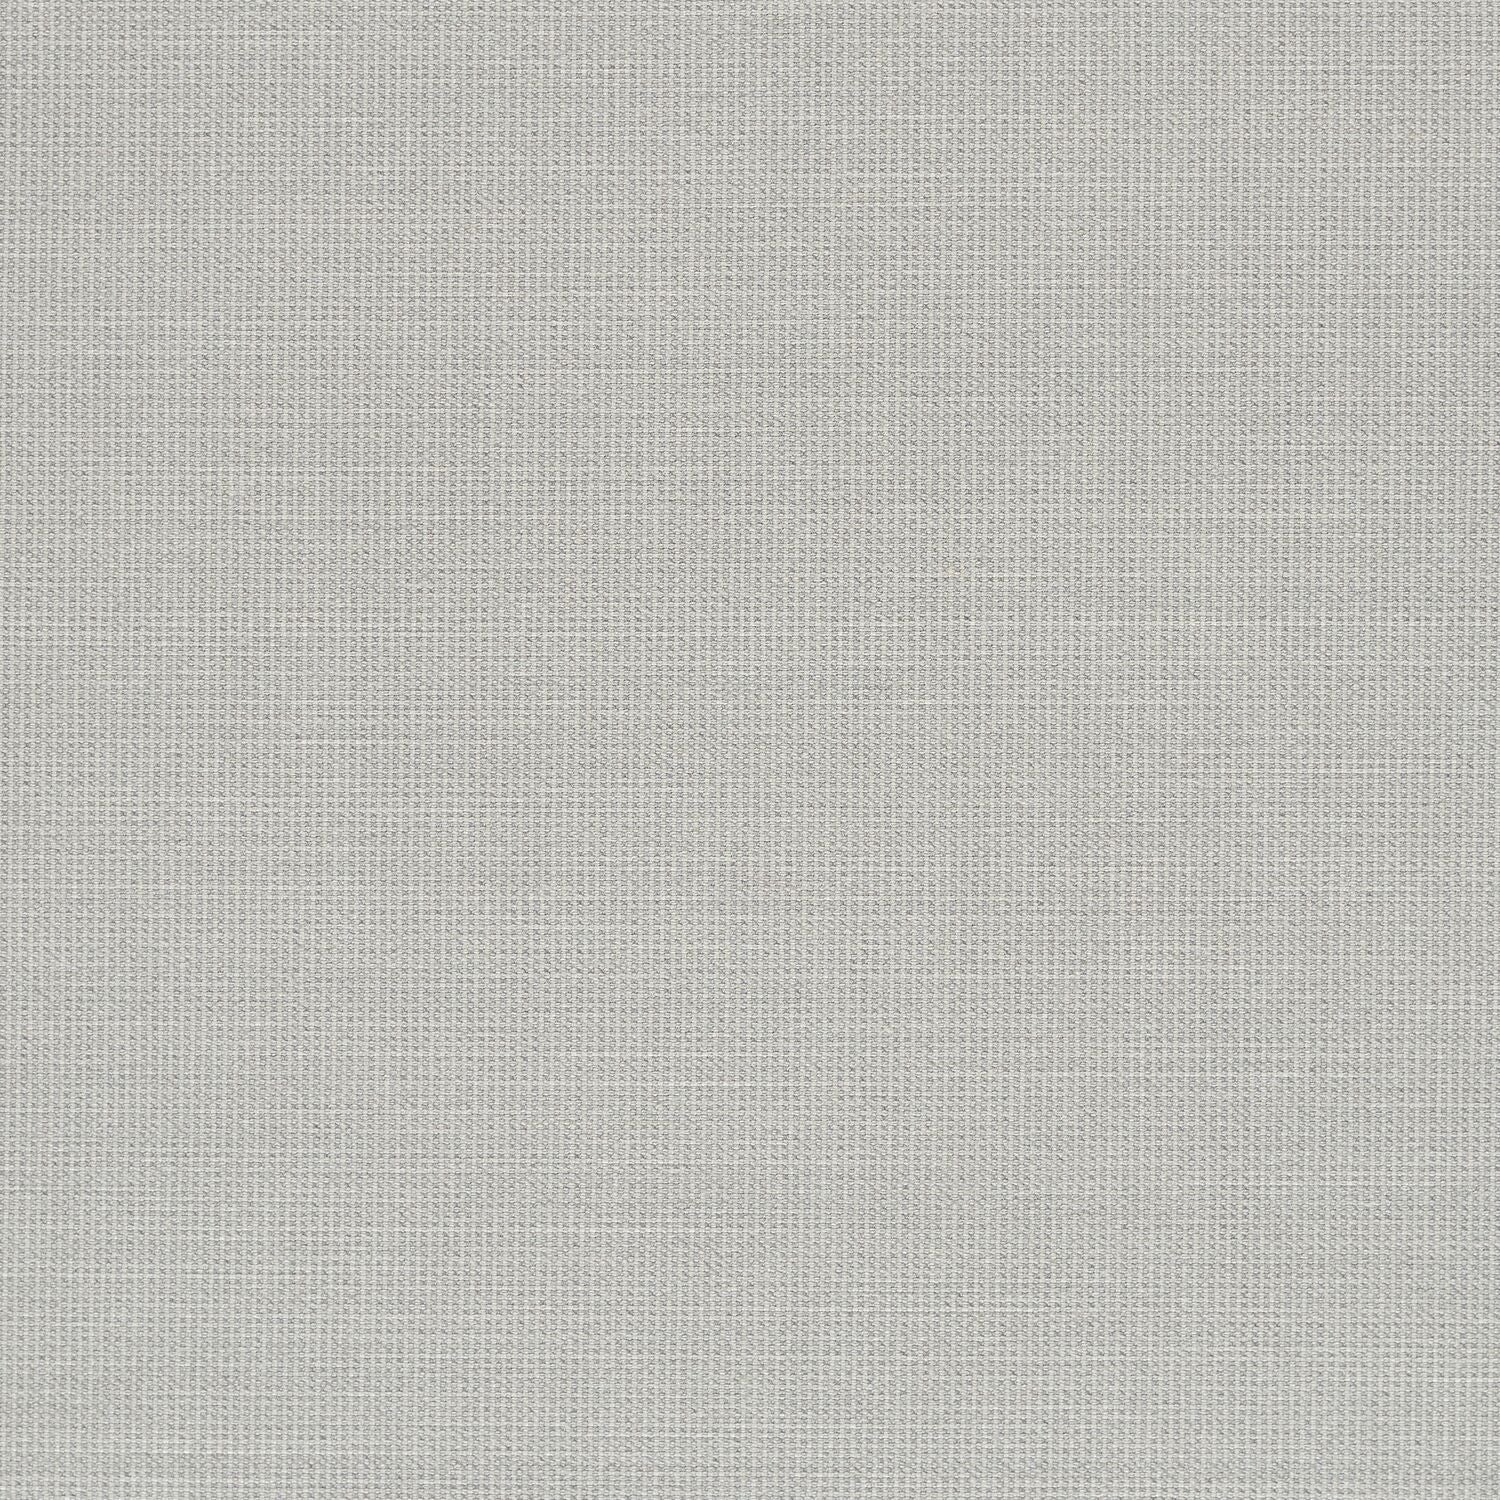 Elastic Wool - Clean - 4067 - 04